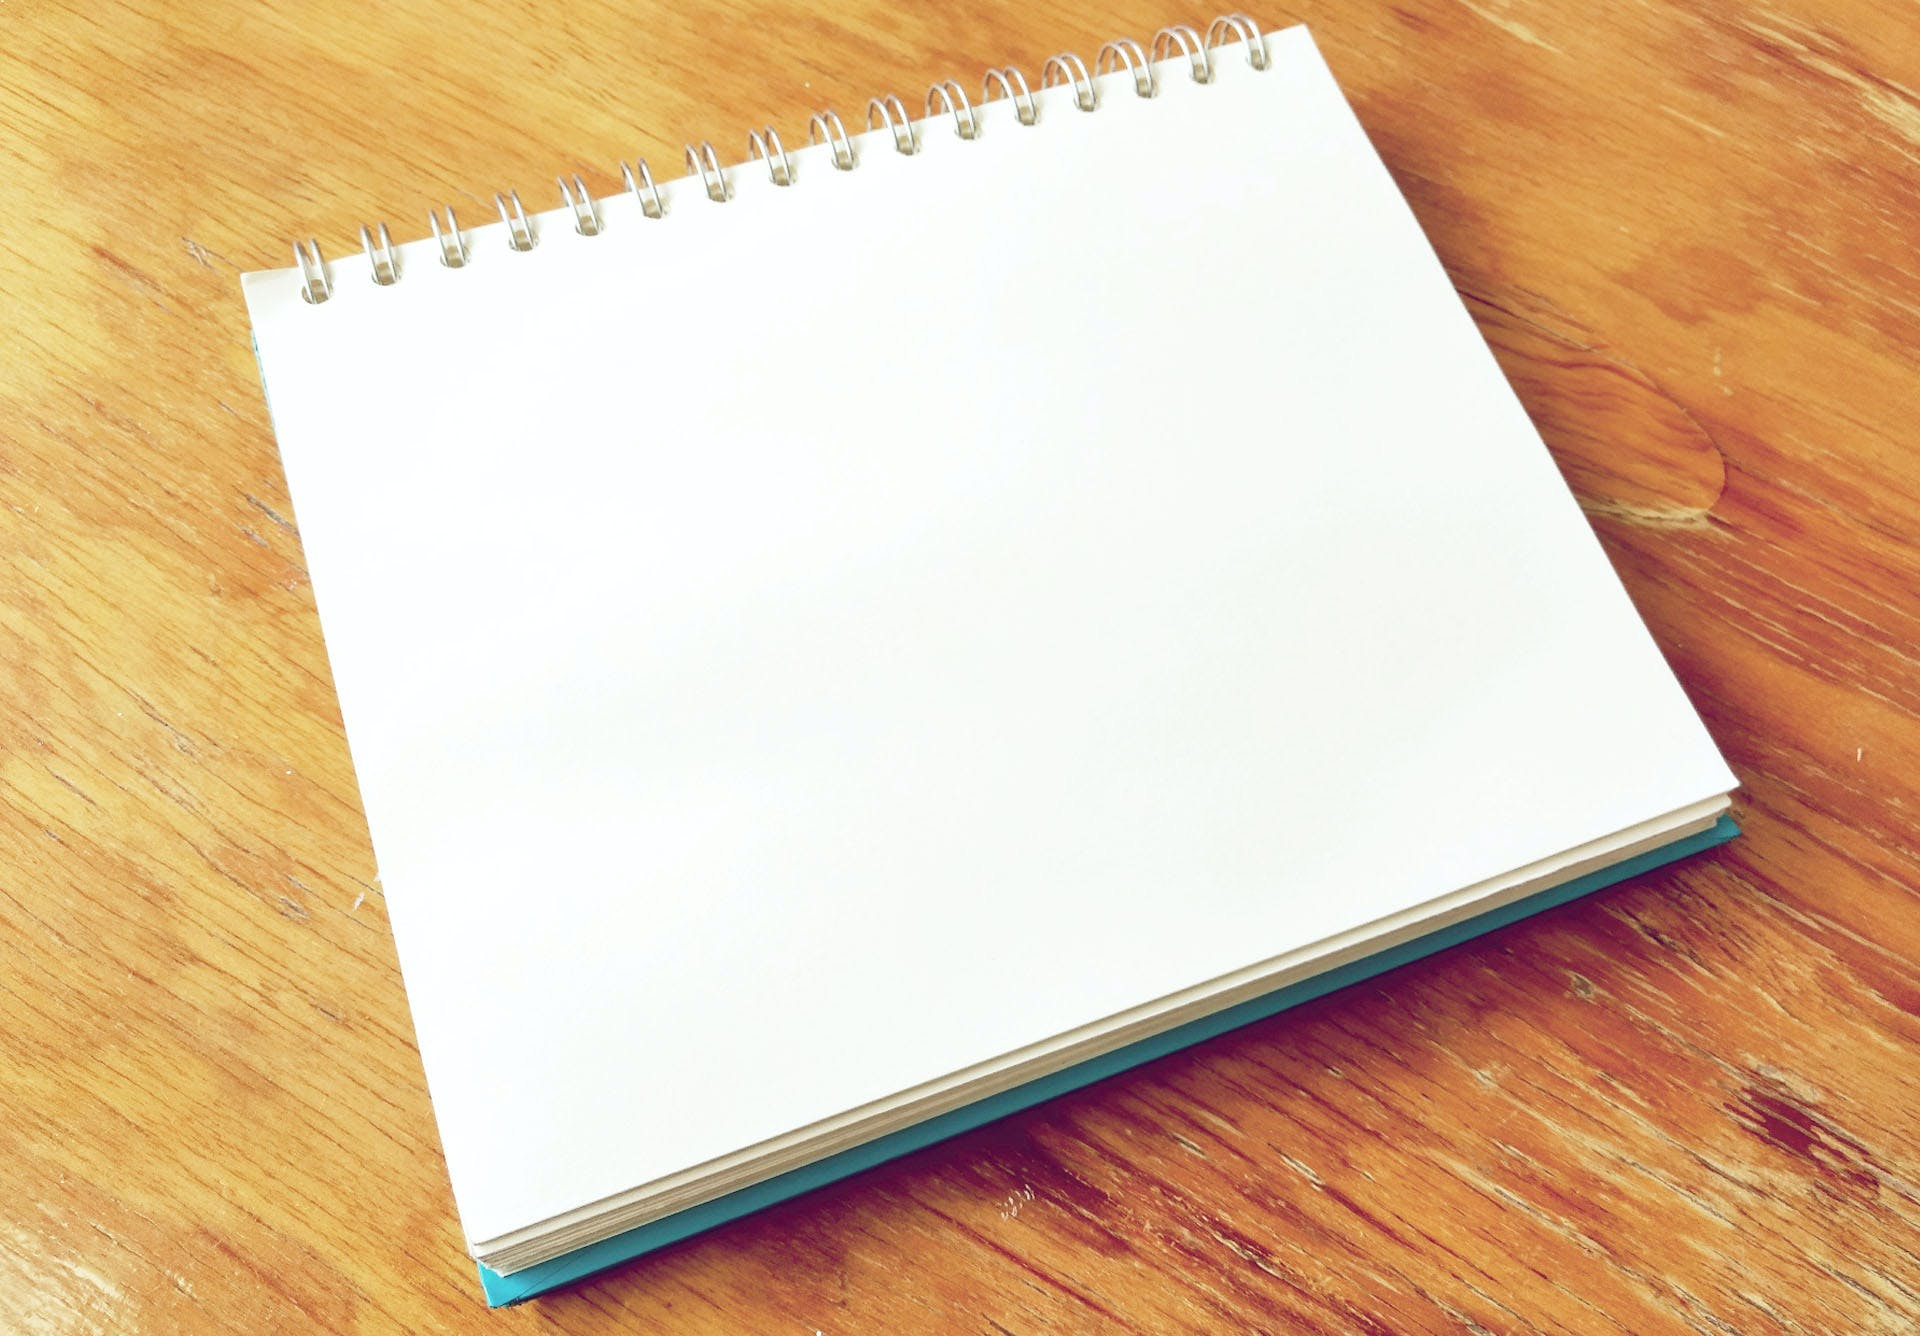 Free stock photo of notebook, paper, page, blank